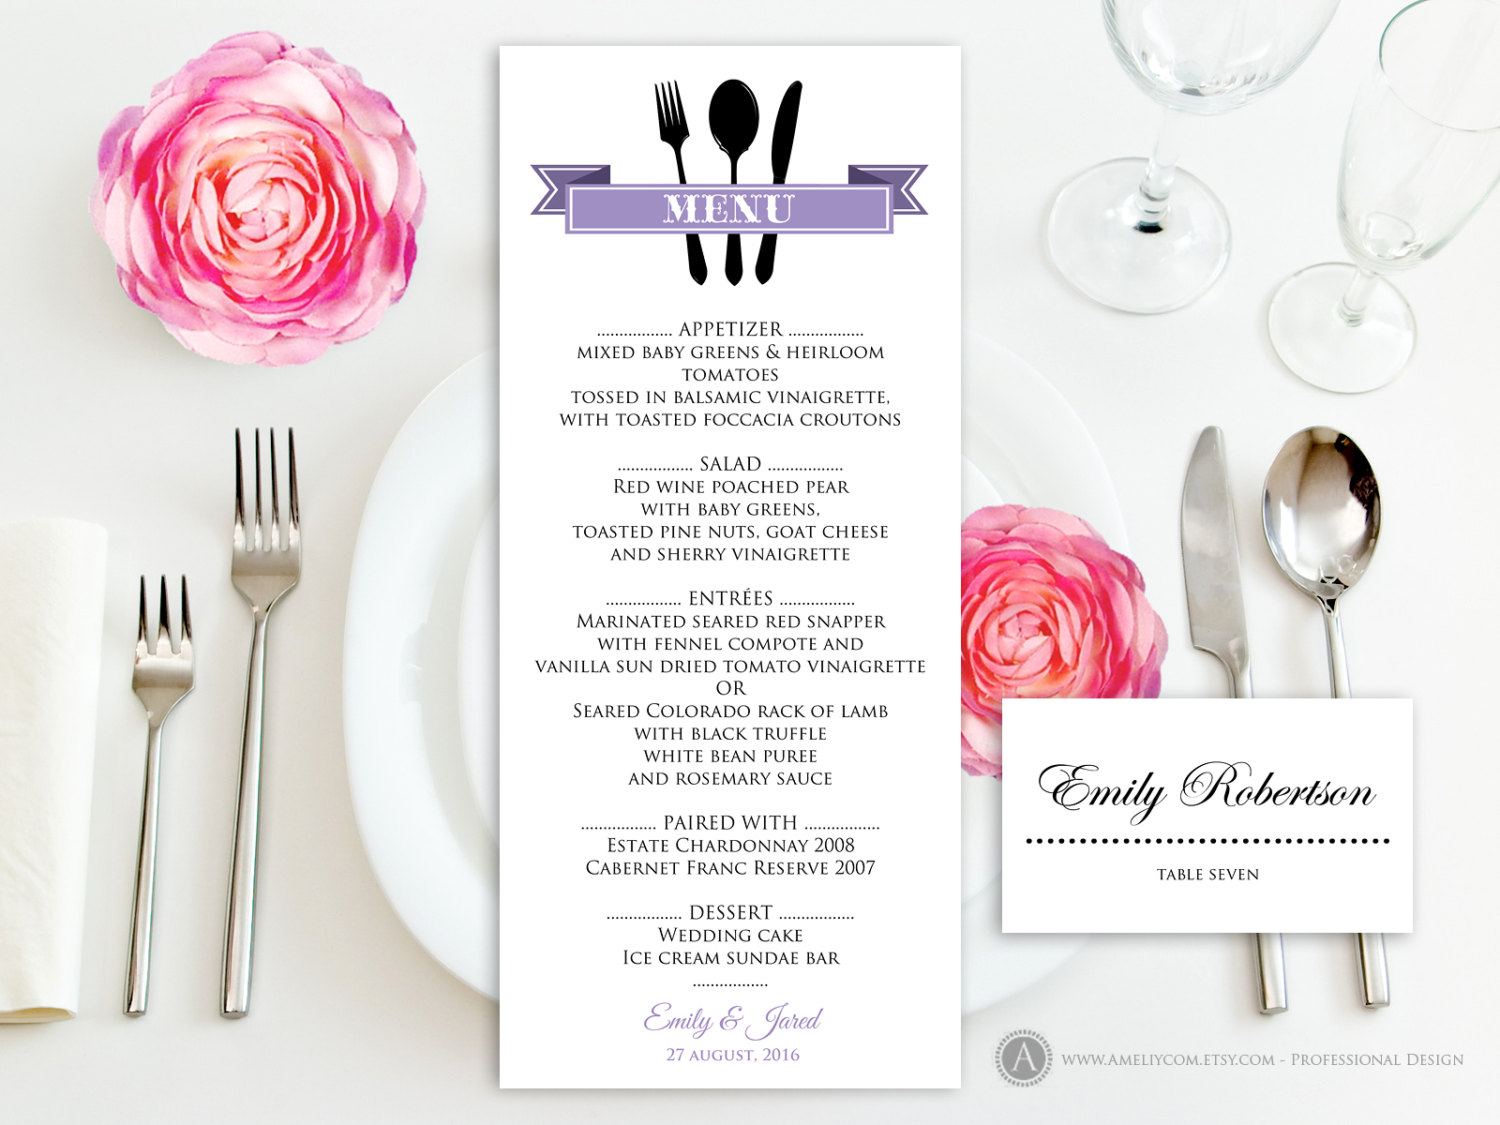 Printable Dinner Menu Lilac Free Place Card For Wedding - Wedding place card templates free download